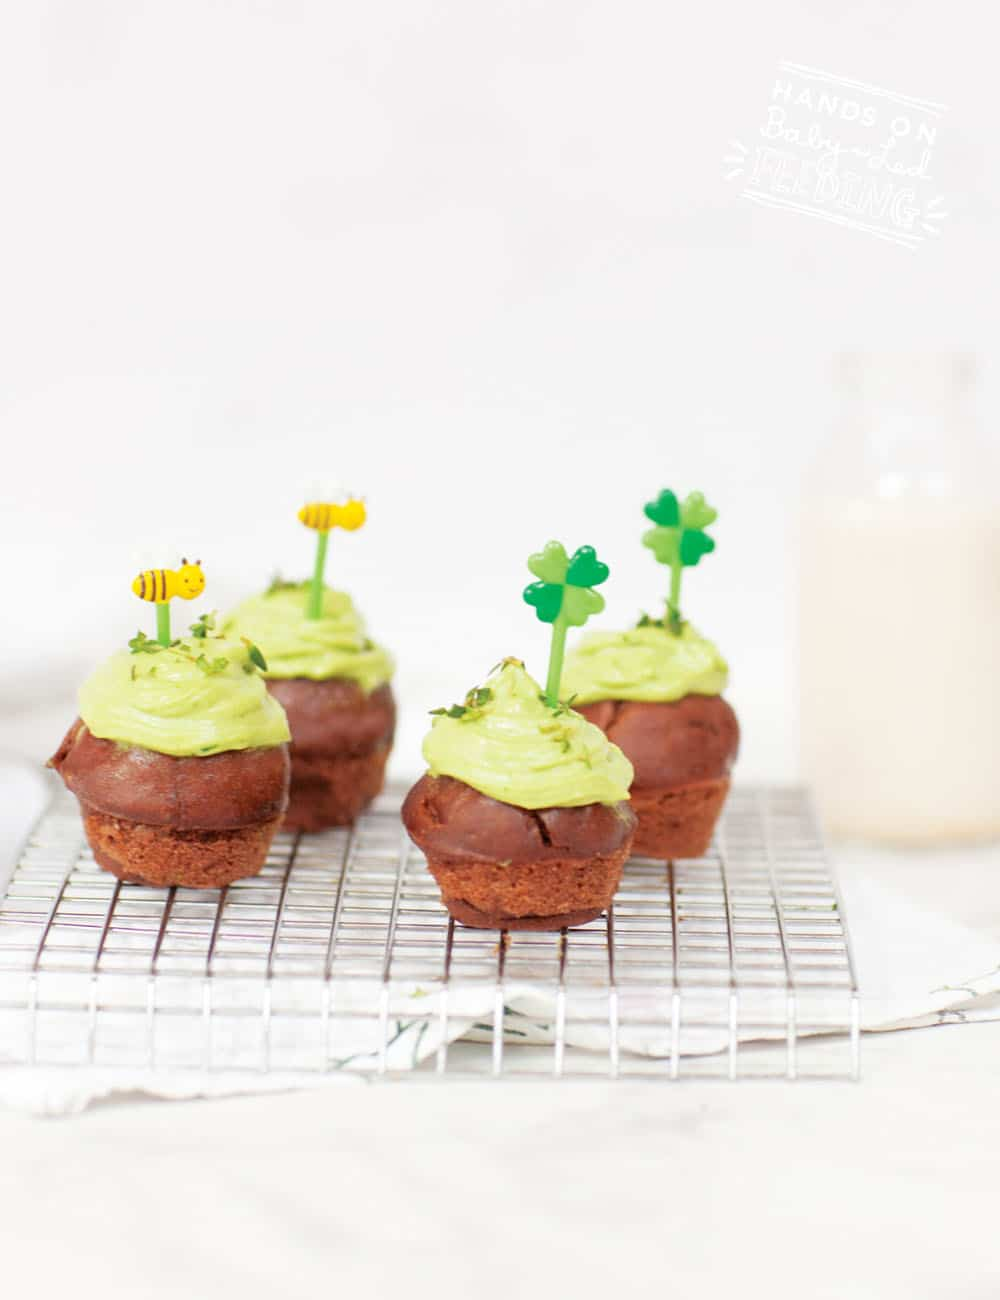 Healthy Brownie Bites for Baby Led Weaning. Refined sugar-free naturally sweetened with bananas! Vegan frosting naturally sweetened and colored! Healthy St. Patrick's Day recipe for kids! #irish #stpatricksday #browniebites #refinedsugarfree #bananas #babyledweaning #babyledfeeding #babyfood #fingerfood #partyfood #makeahead